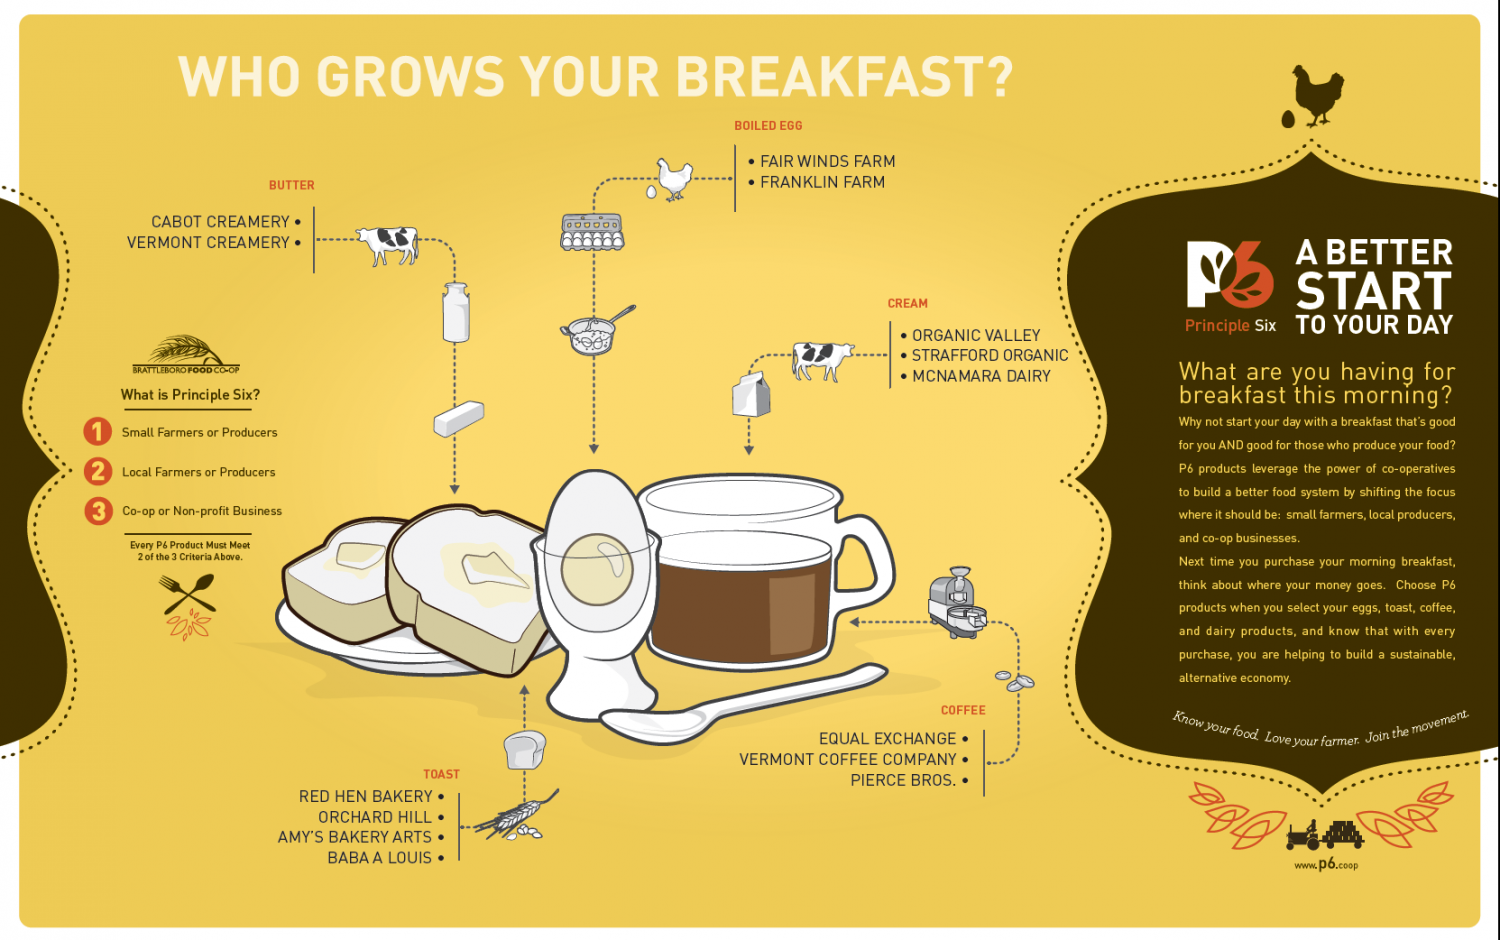 Who Grows your Breakfast? Infographic